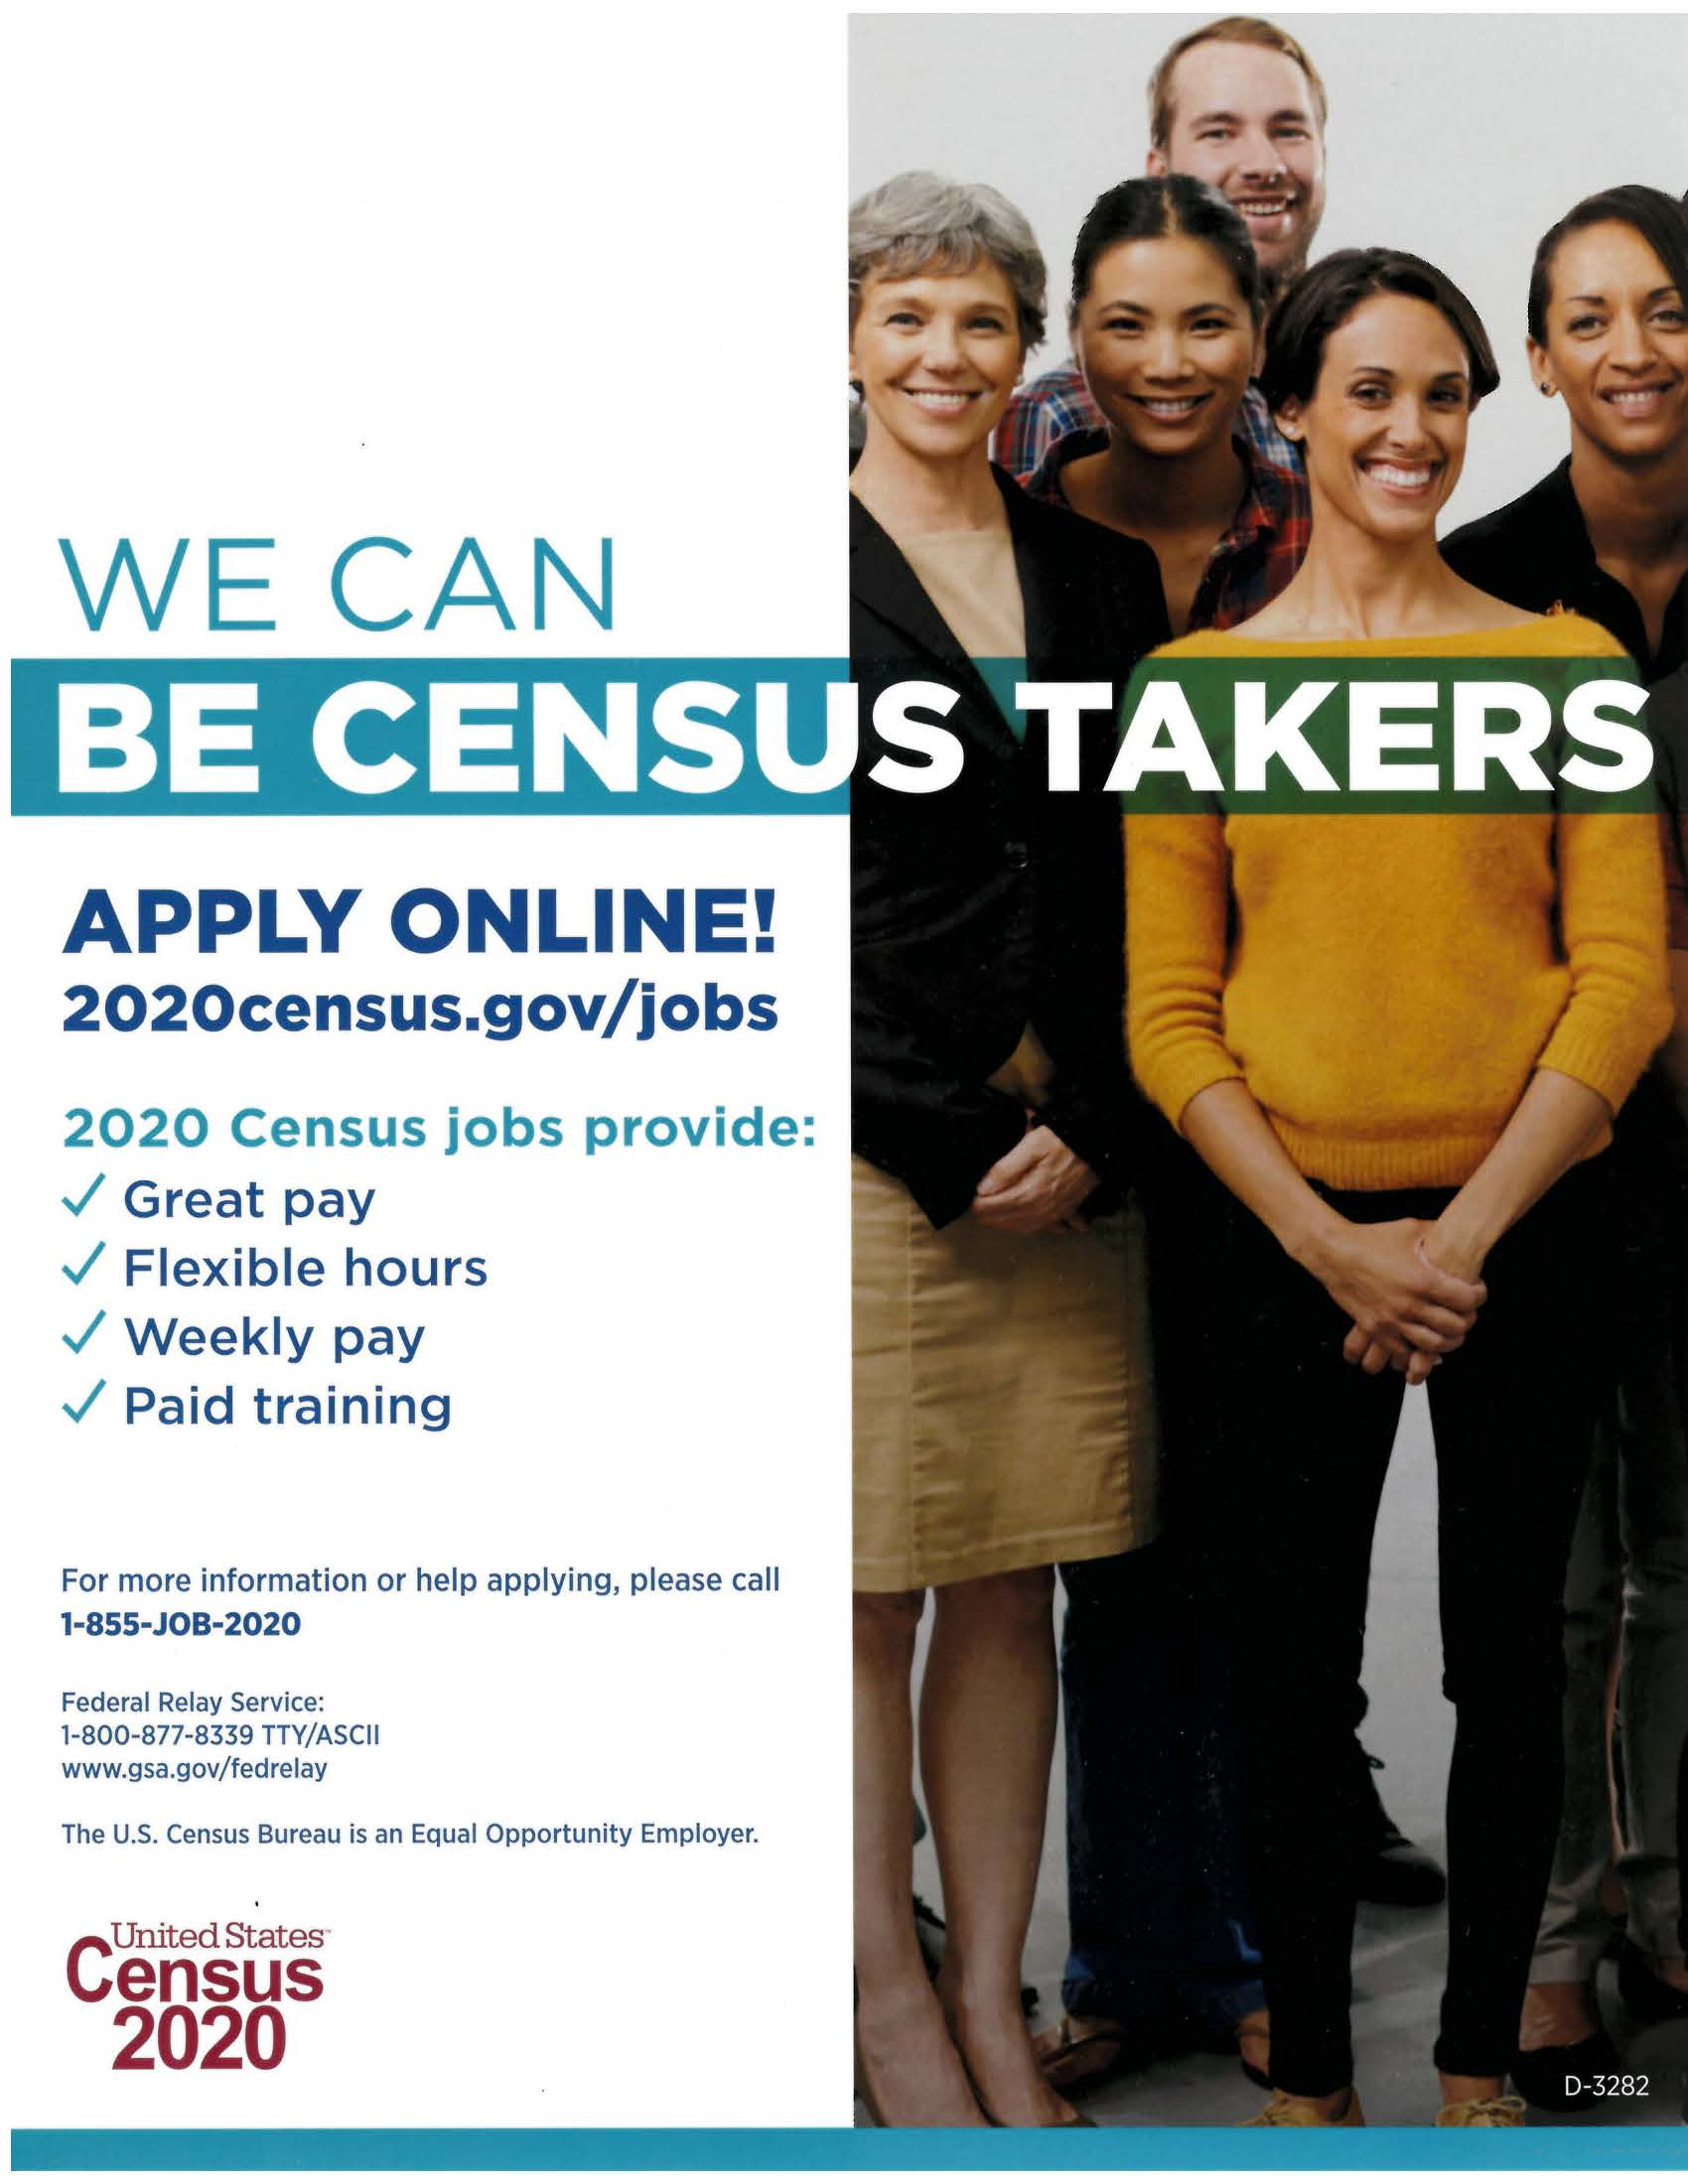 303 D3282 Be Census Takers